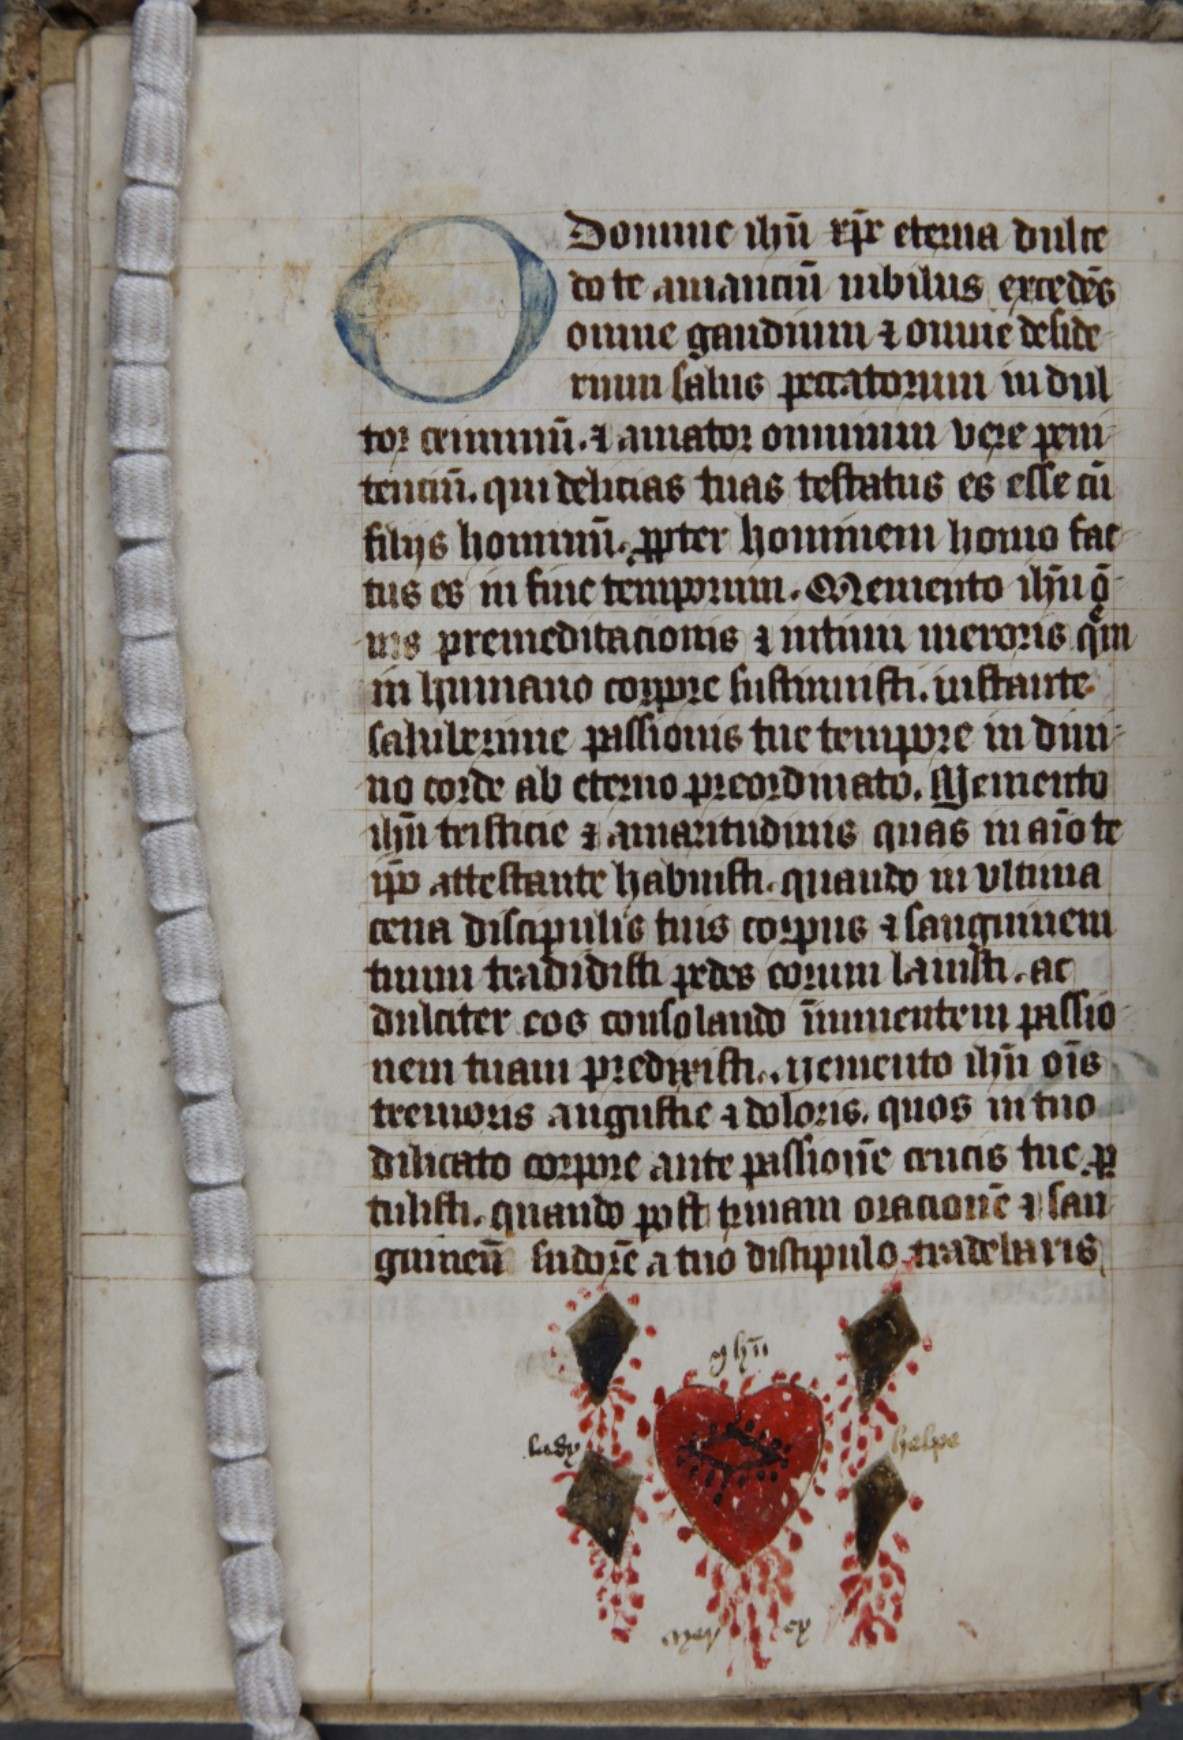 Page showing illustration of the five wounds of Christ, from MS 3774 f.5v